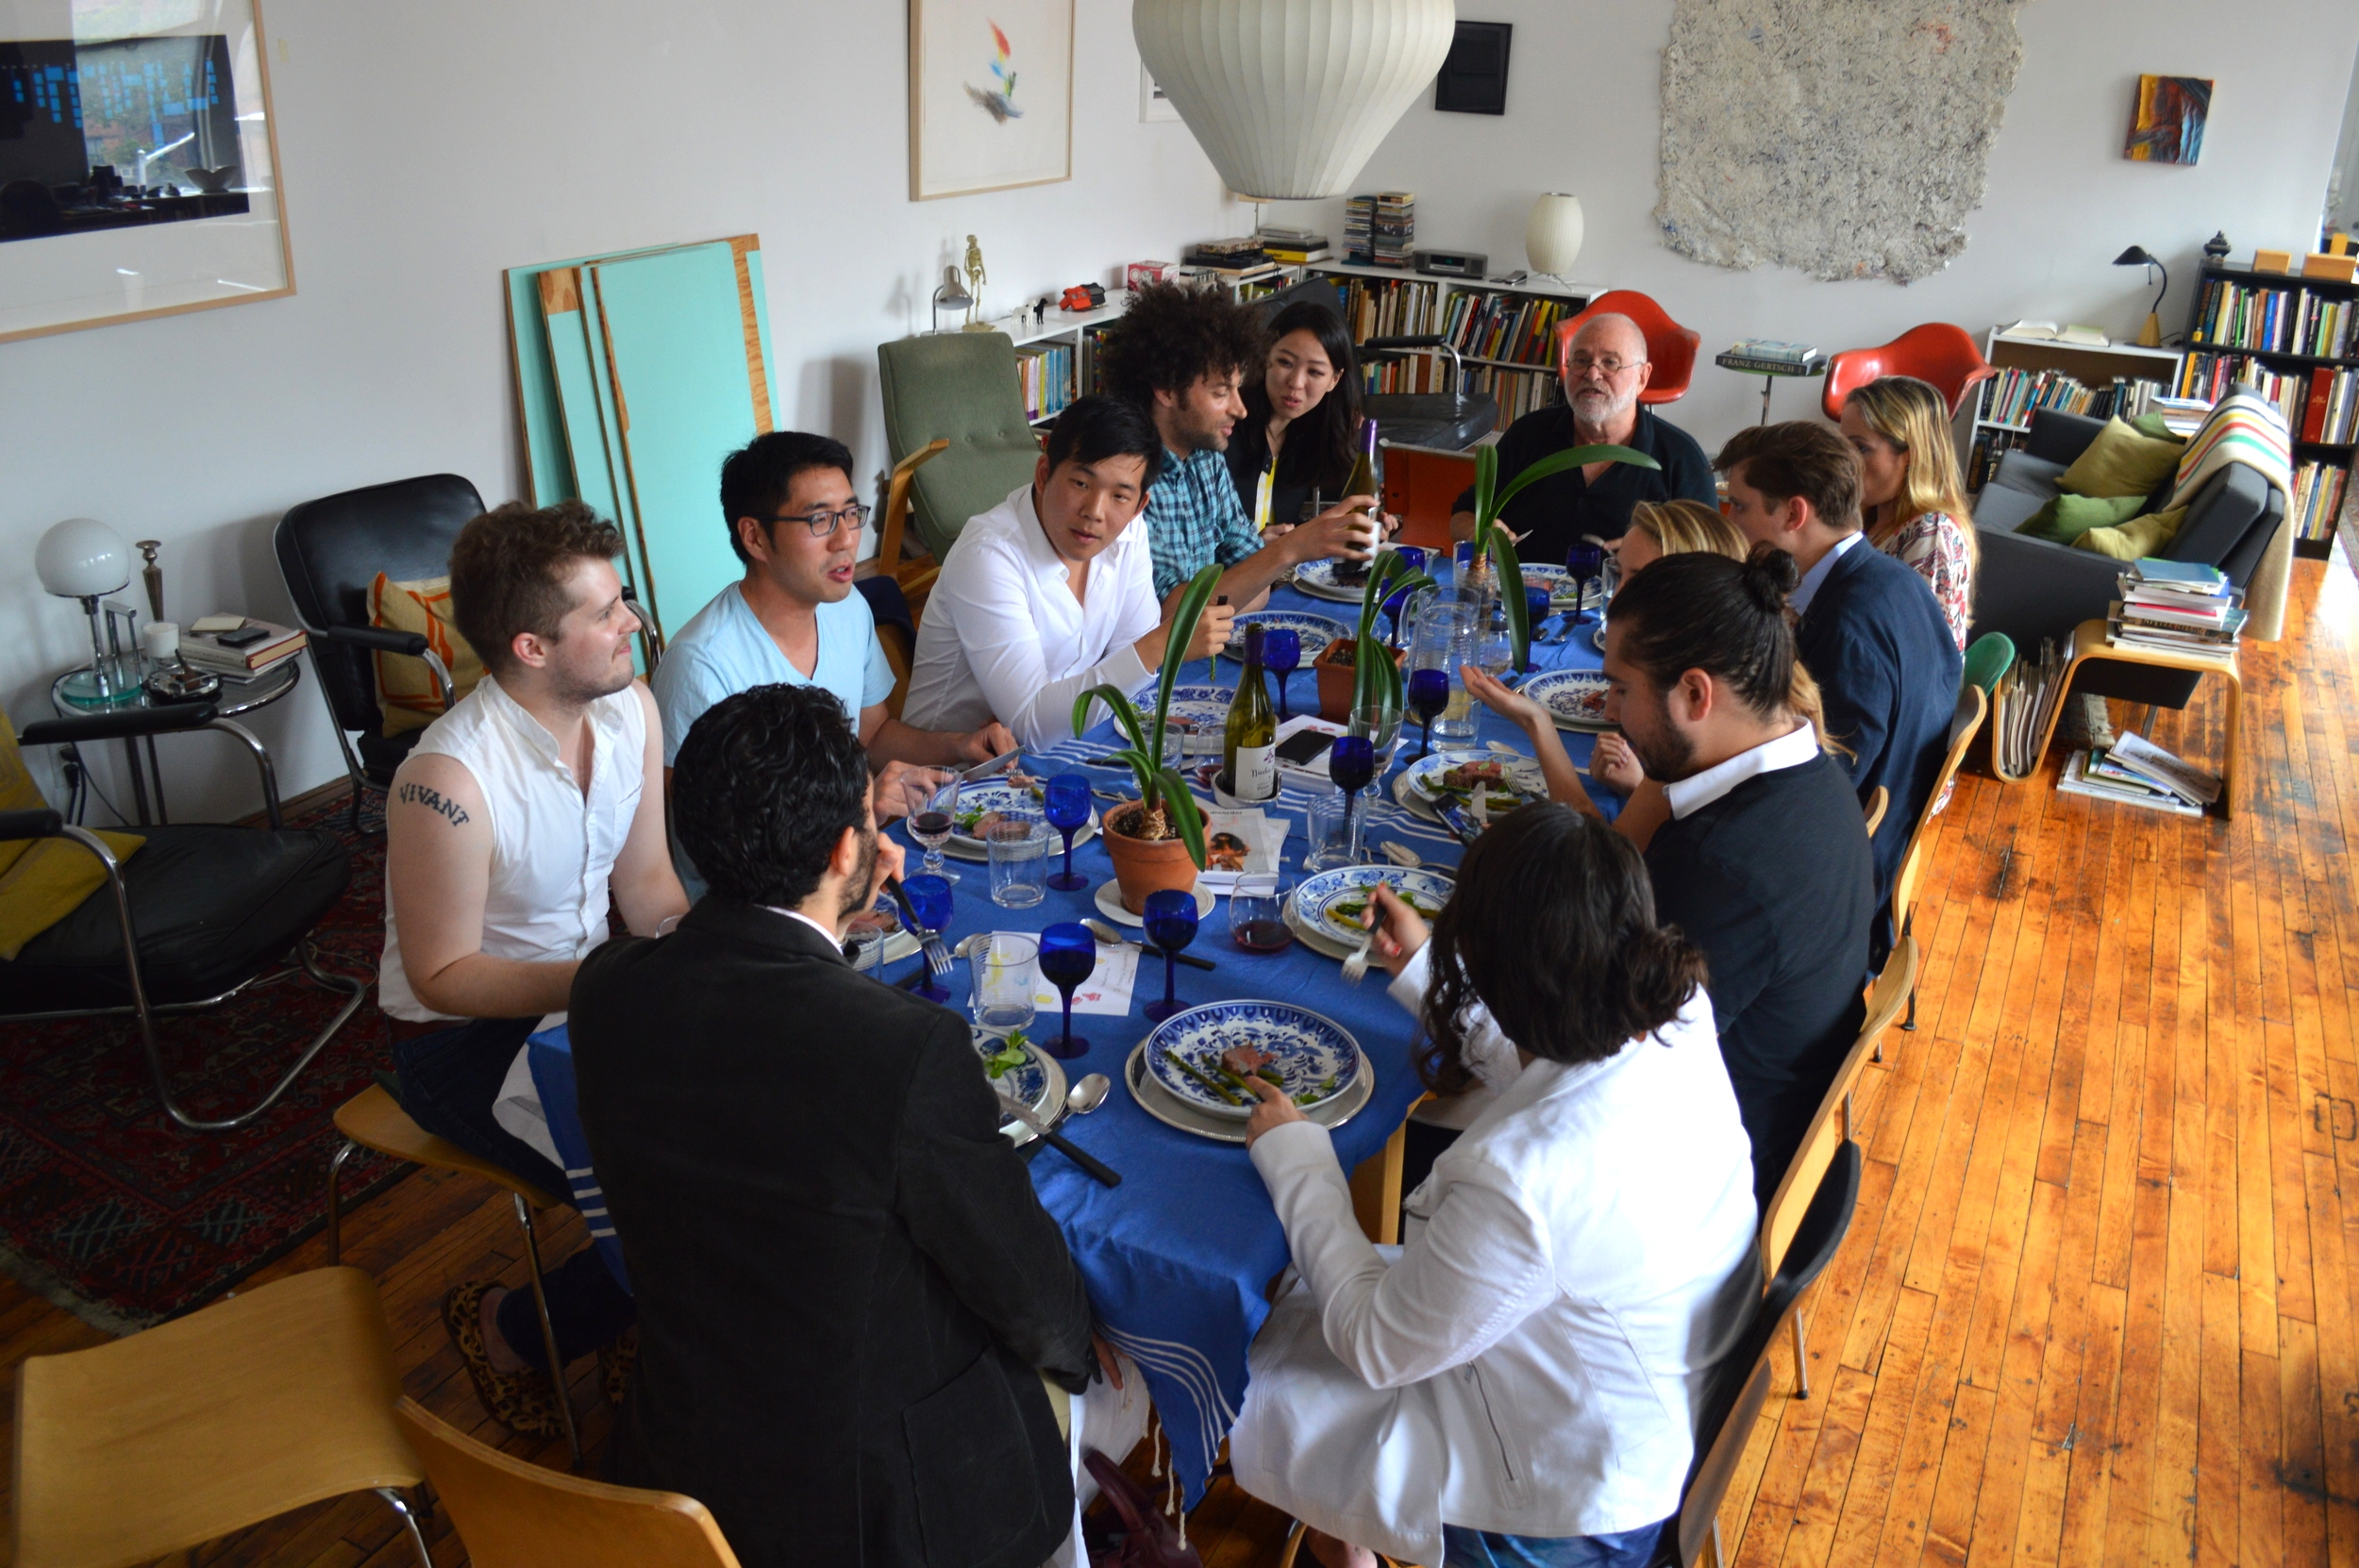 Guests dining at the table